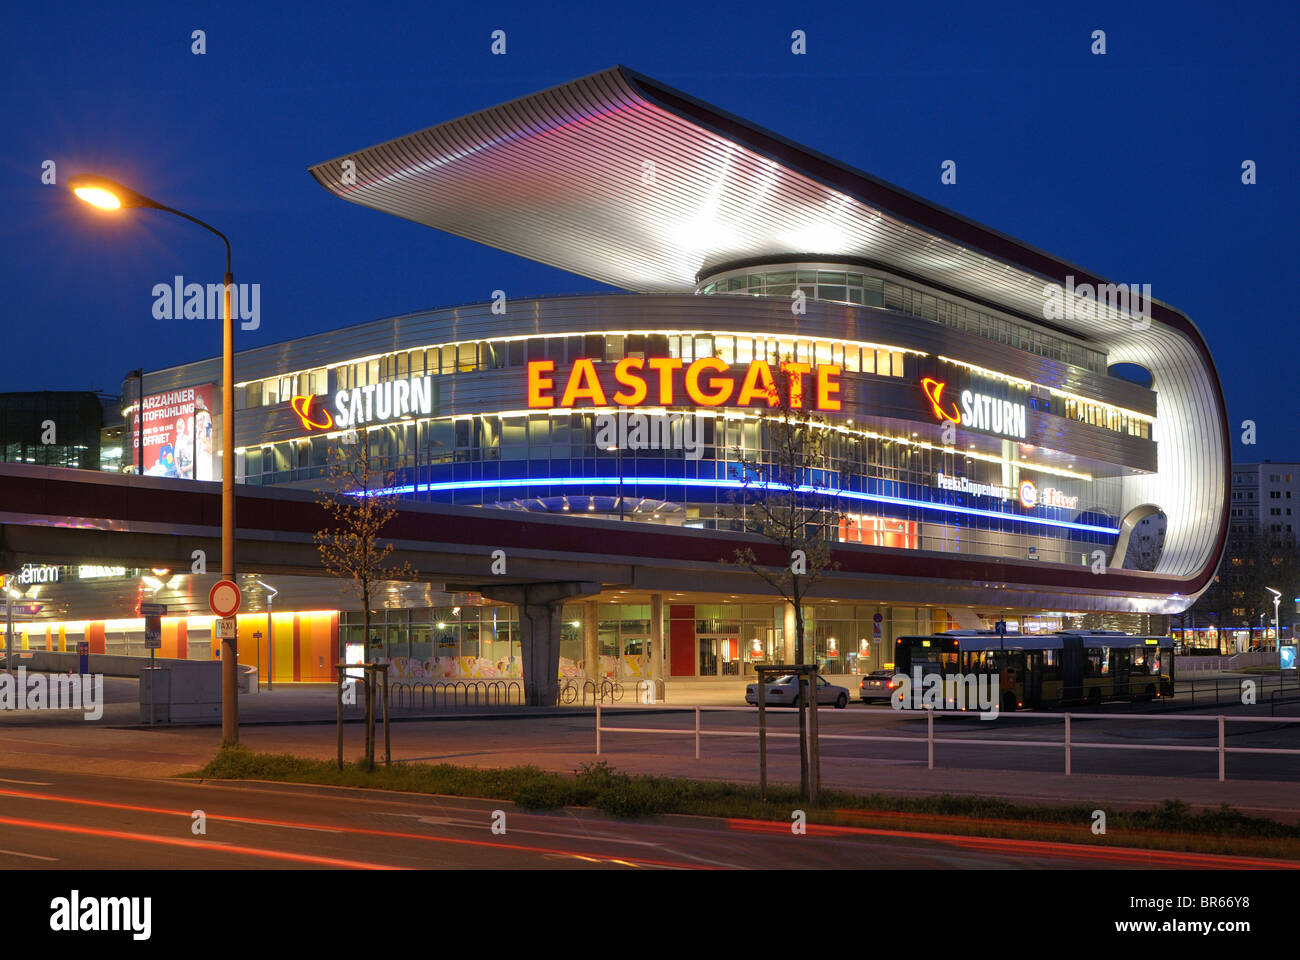 Eastgate, one of the largest shopping and recreation centres in Berlin and eastern Germany, in Marzahn, Berlin, Stock Photo